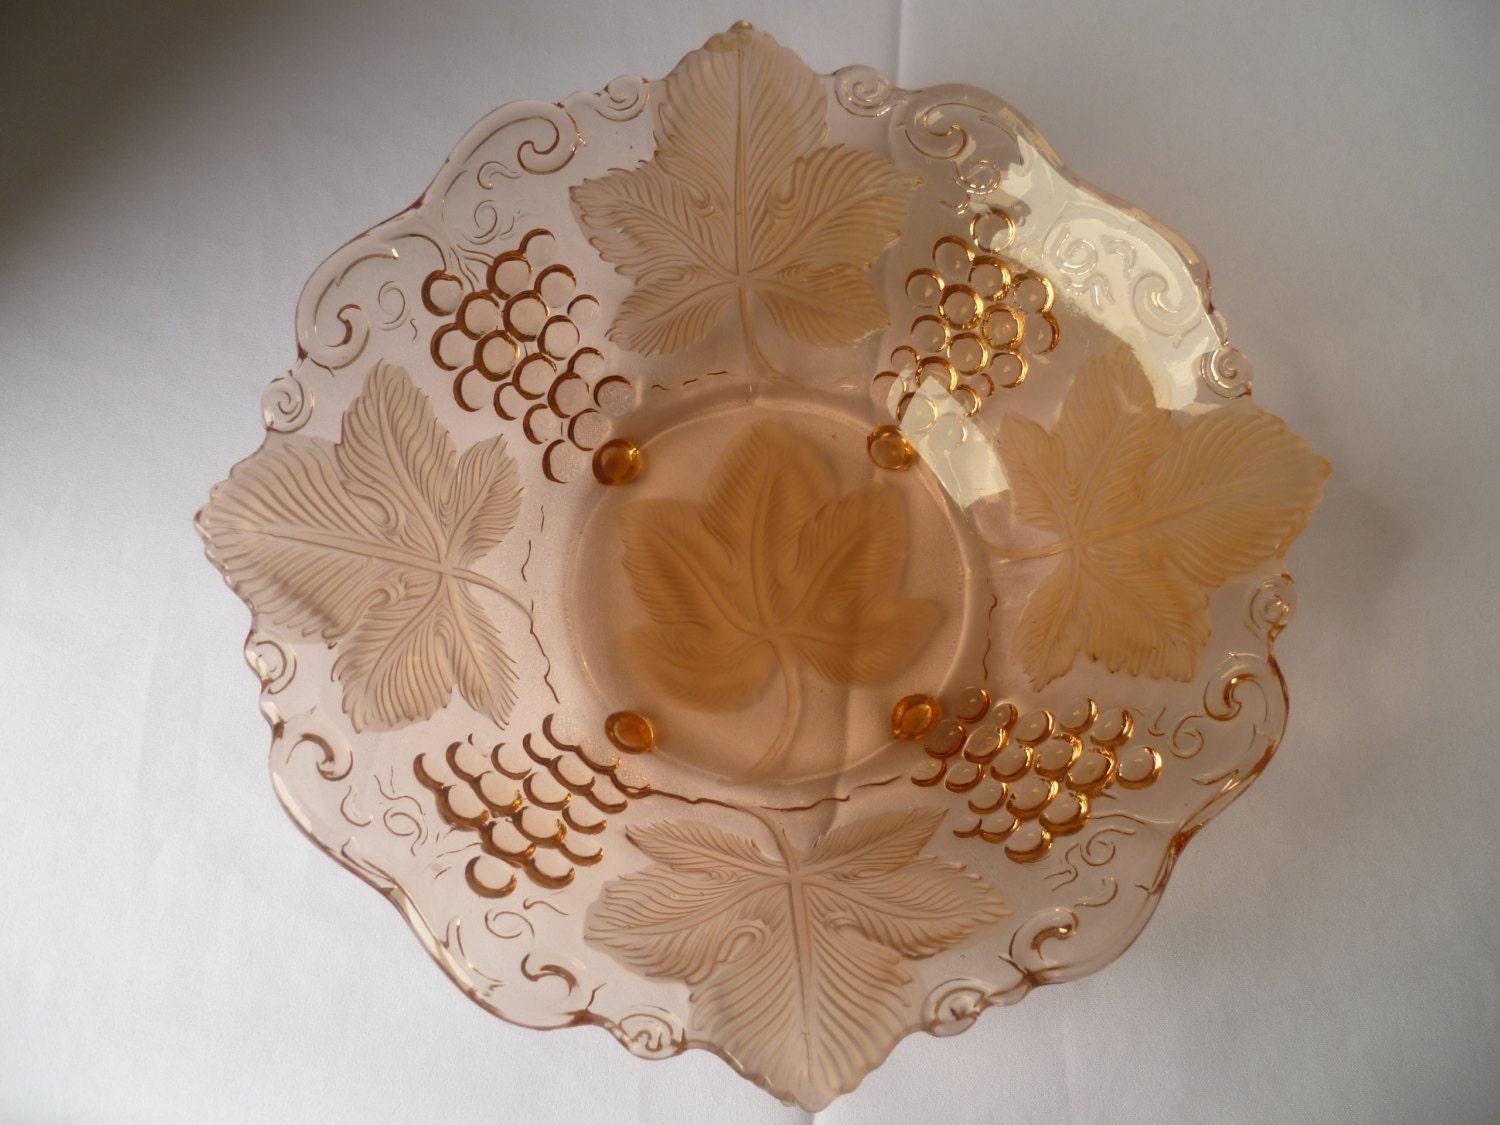 1930  pressed glass pink fruit glass salad bowl decorated in Relief with grapes and leafs.